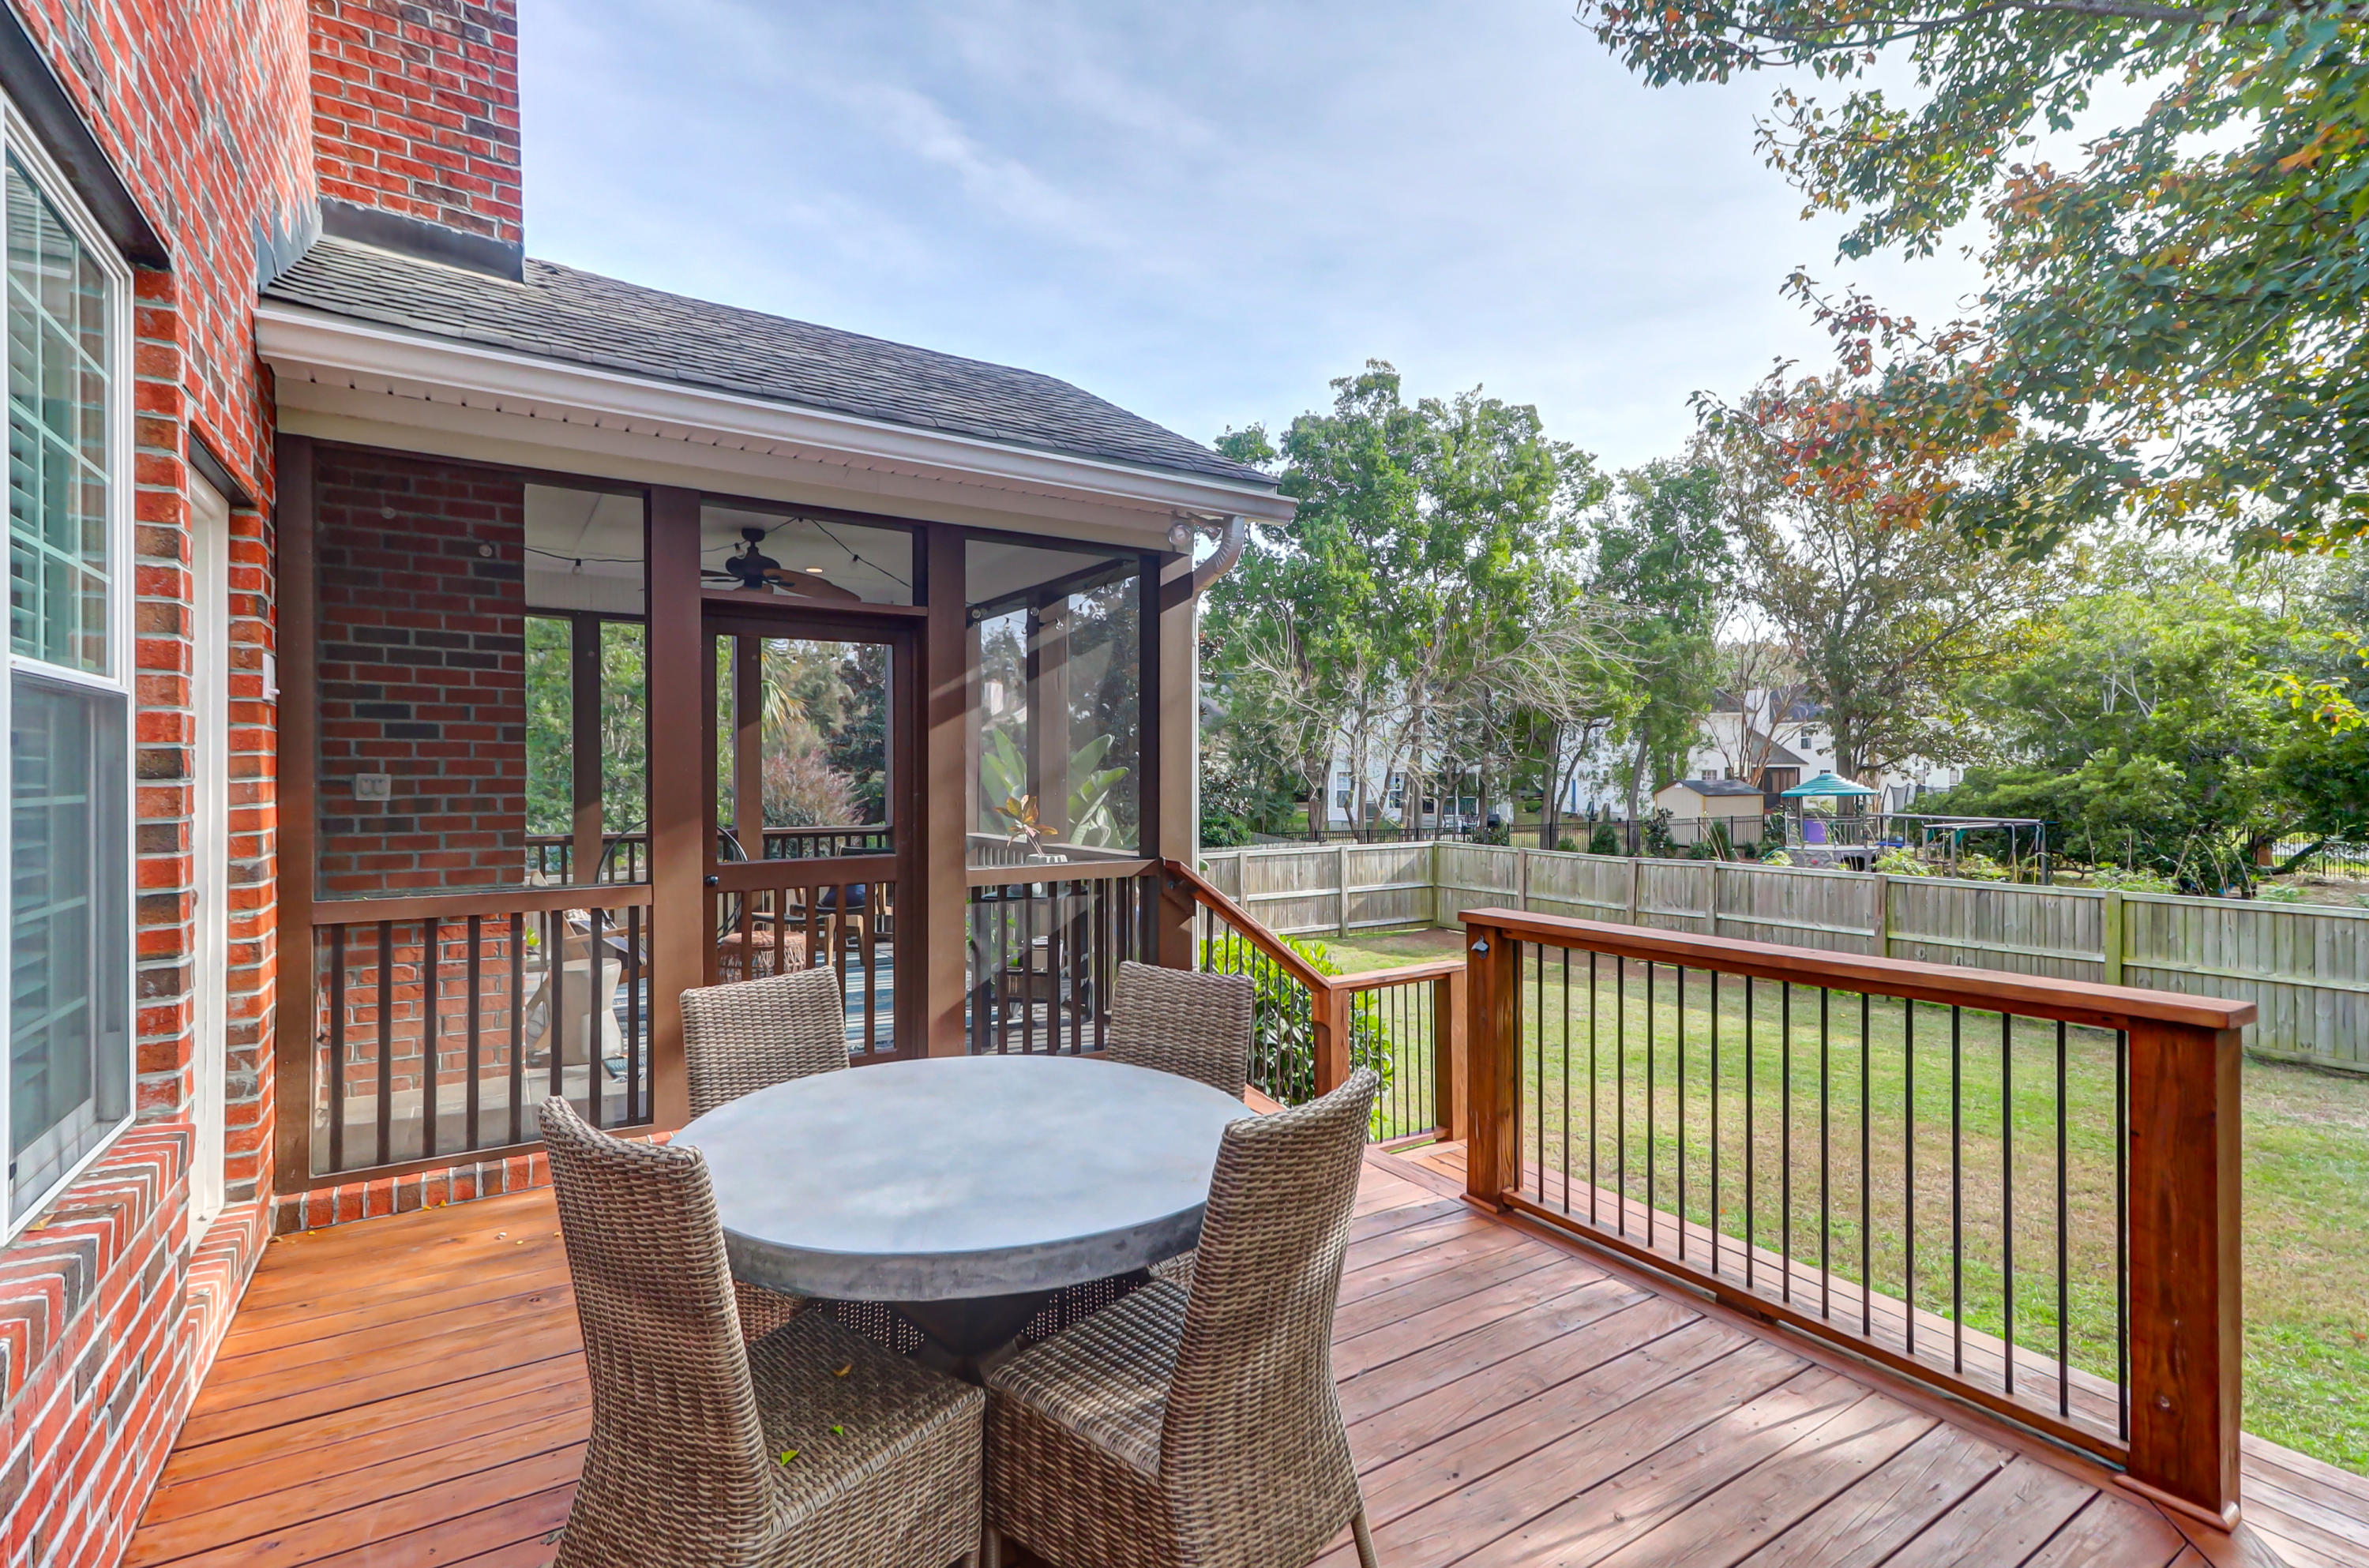 Woodward Pointe Homes For Sale - 657 White Chapel, Charleston, SC - 25